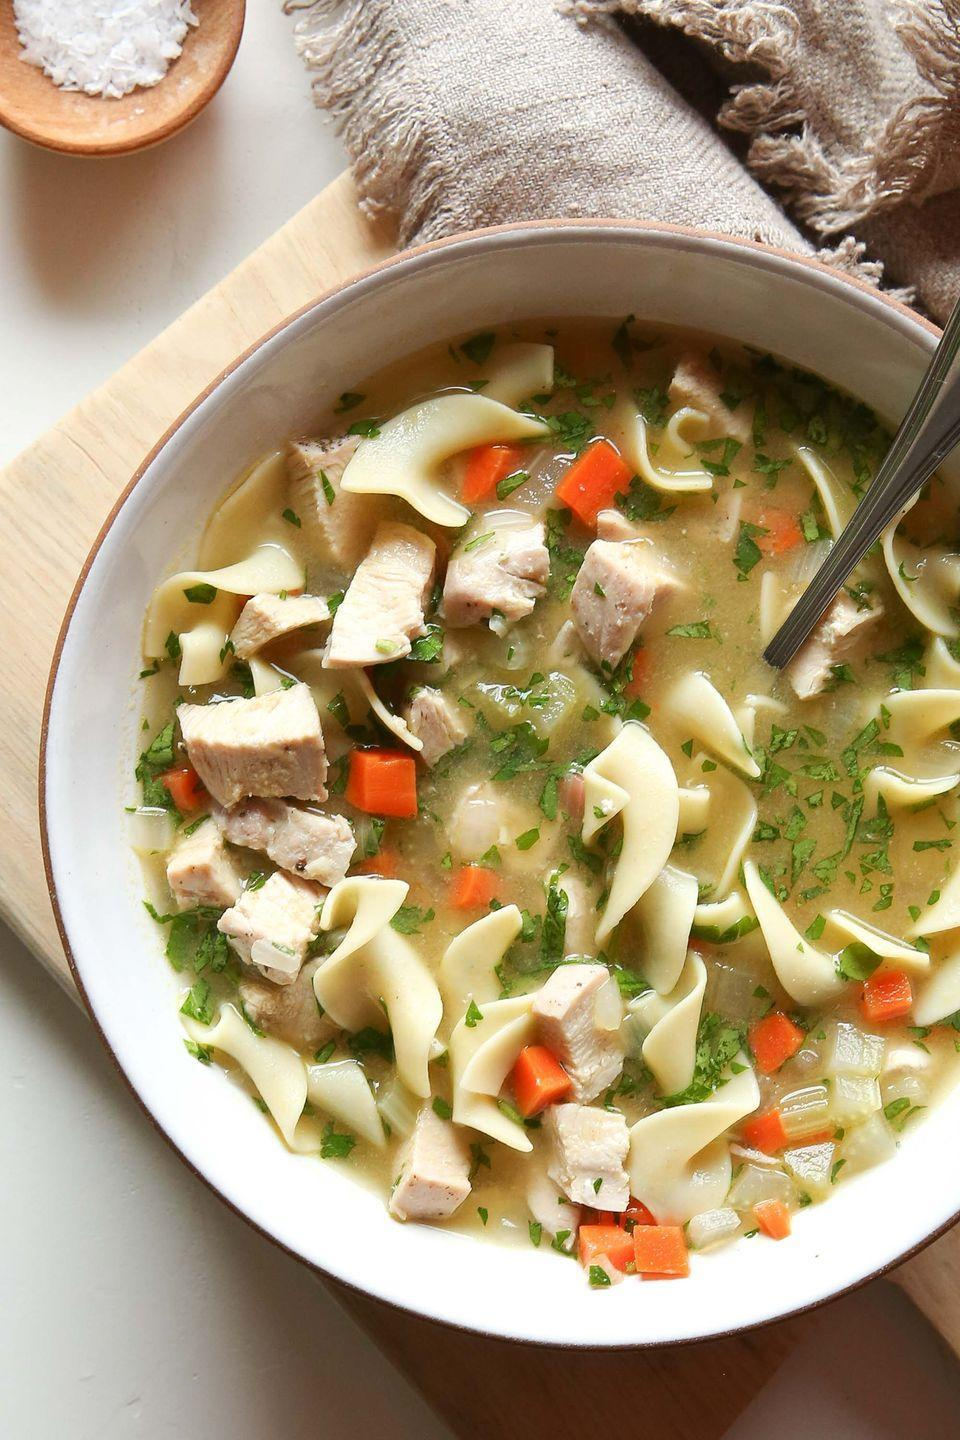 """<p>We're never going back to Campbell's.</p><p>Get the recipe from <a href=""""https://www.delish.com/cooking/recipe-ideas/recipes/a51338/homemade-chicken-noodle-soup-recipe/"""" rel=""""nofollow noopener"""" target=""""_blank"""" data-ylk=""""slk:Delish"""" class=""""link rapid-noclick-resp"""">Delish</a>.</p>"""